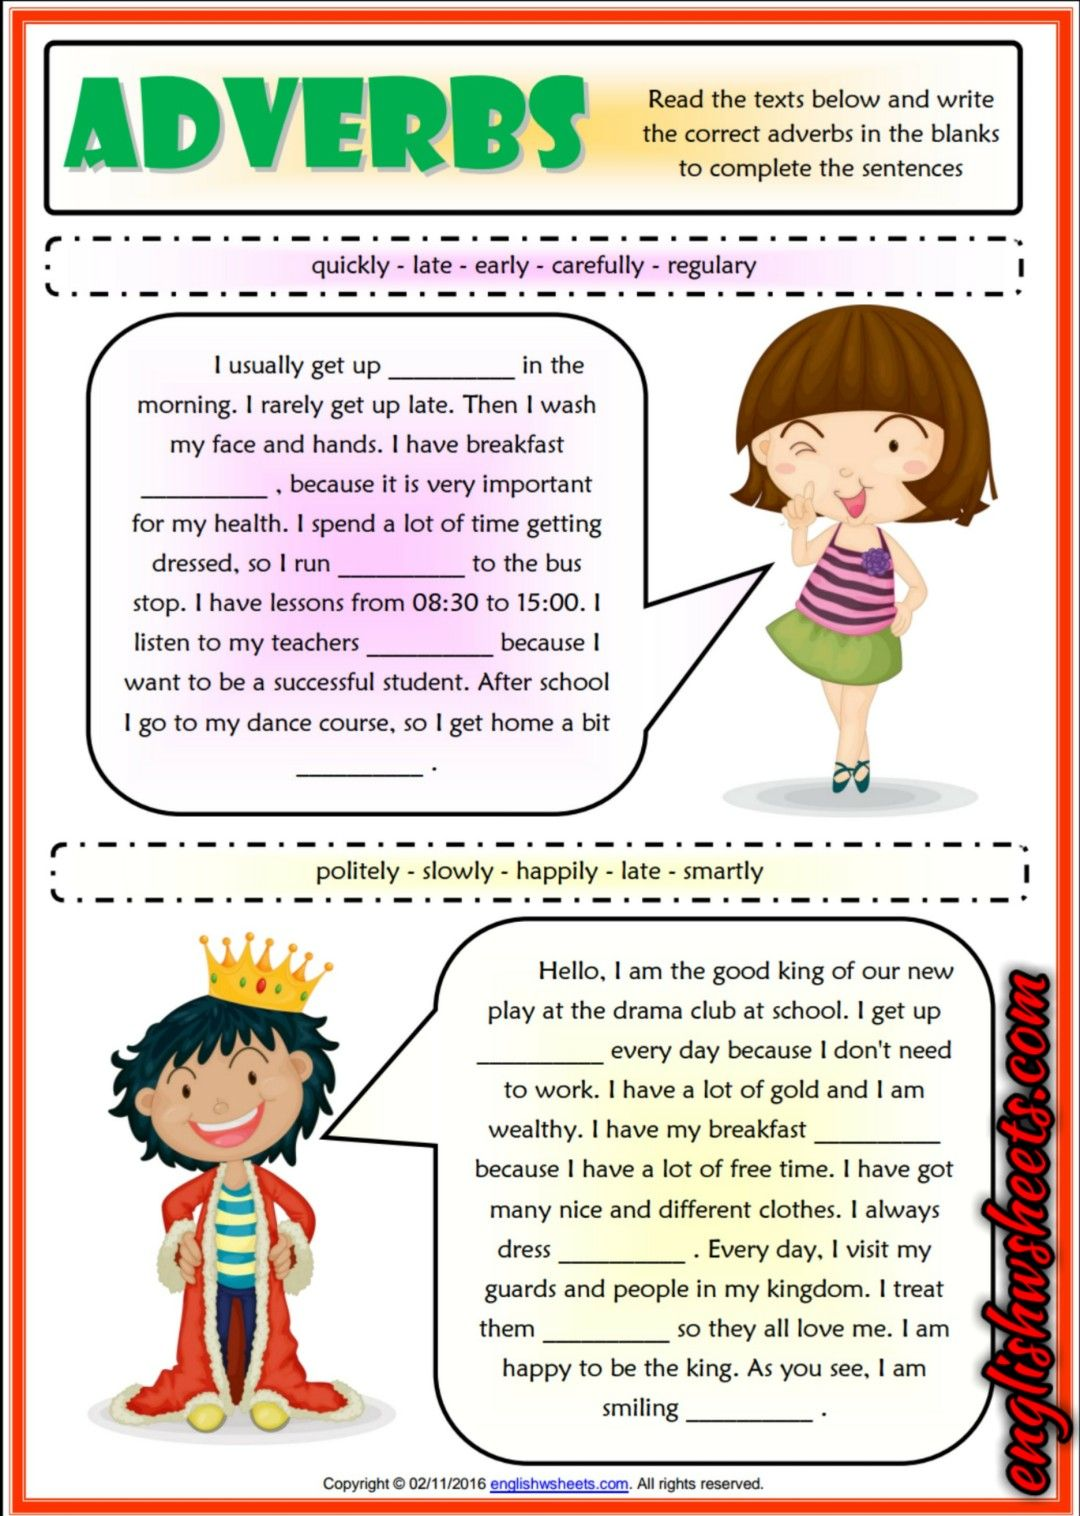 Worksheet On Adverbs For Grade 6